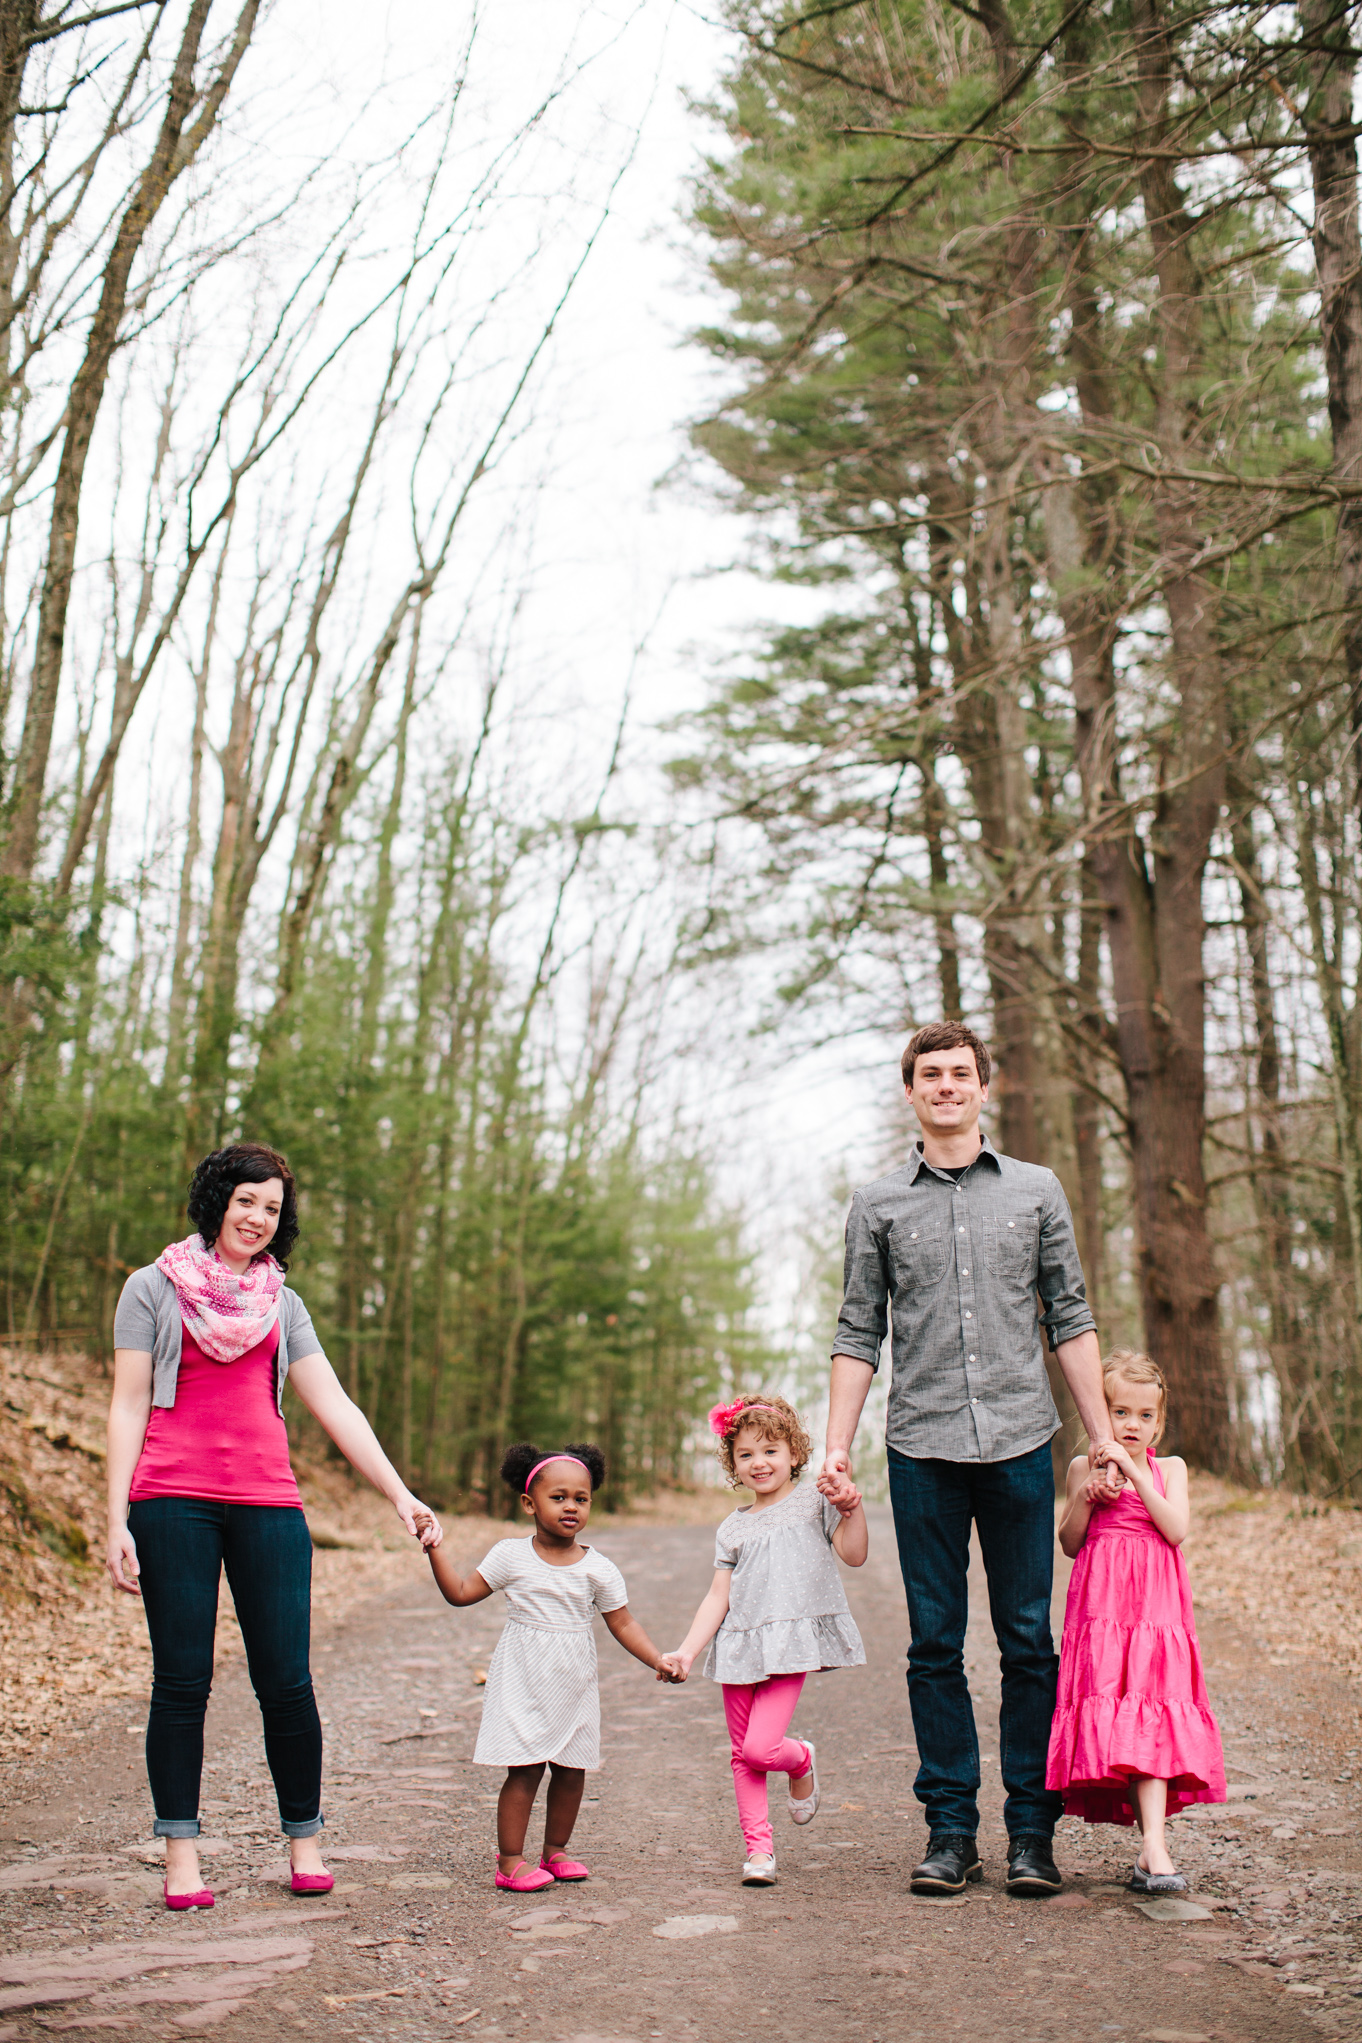 conroy_family_tierney_cyanne_photography_blog_3838.jpg